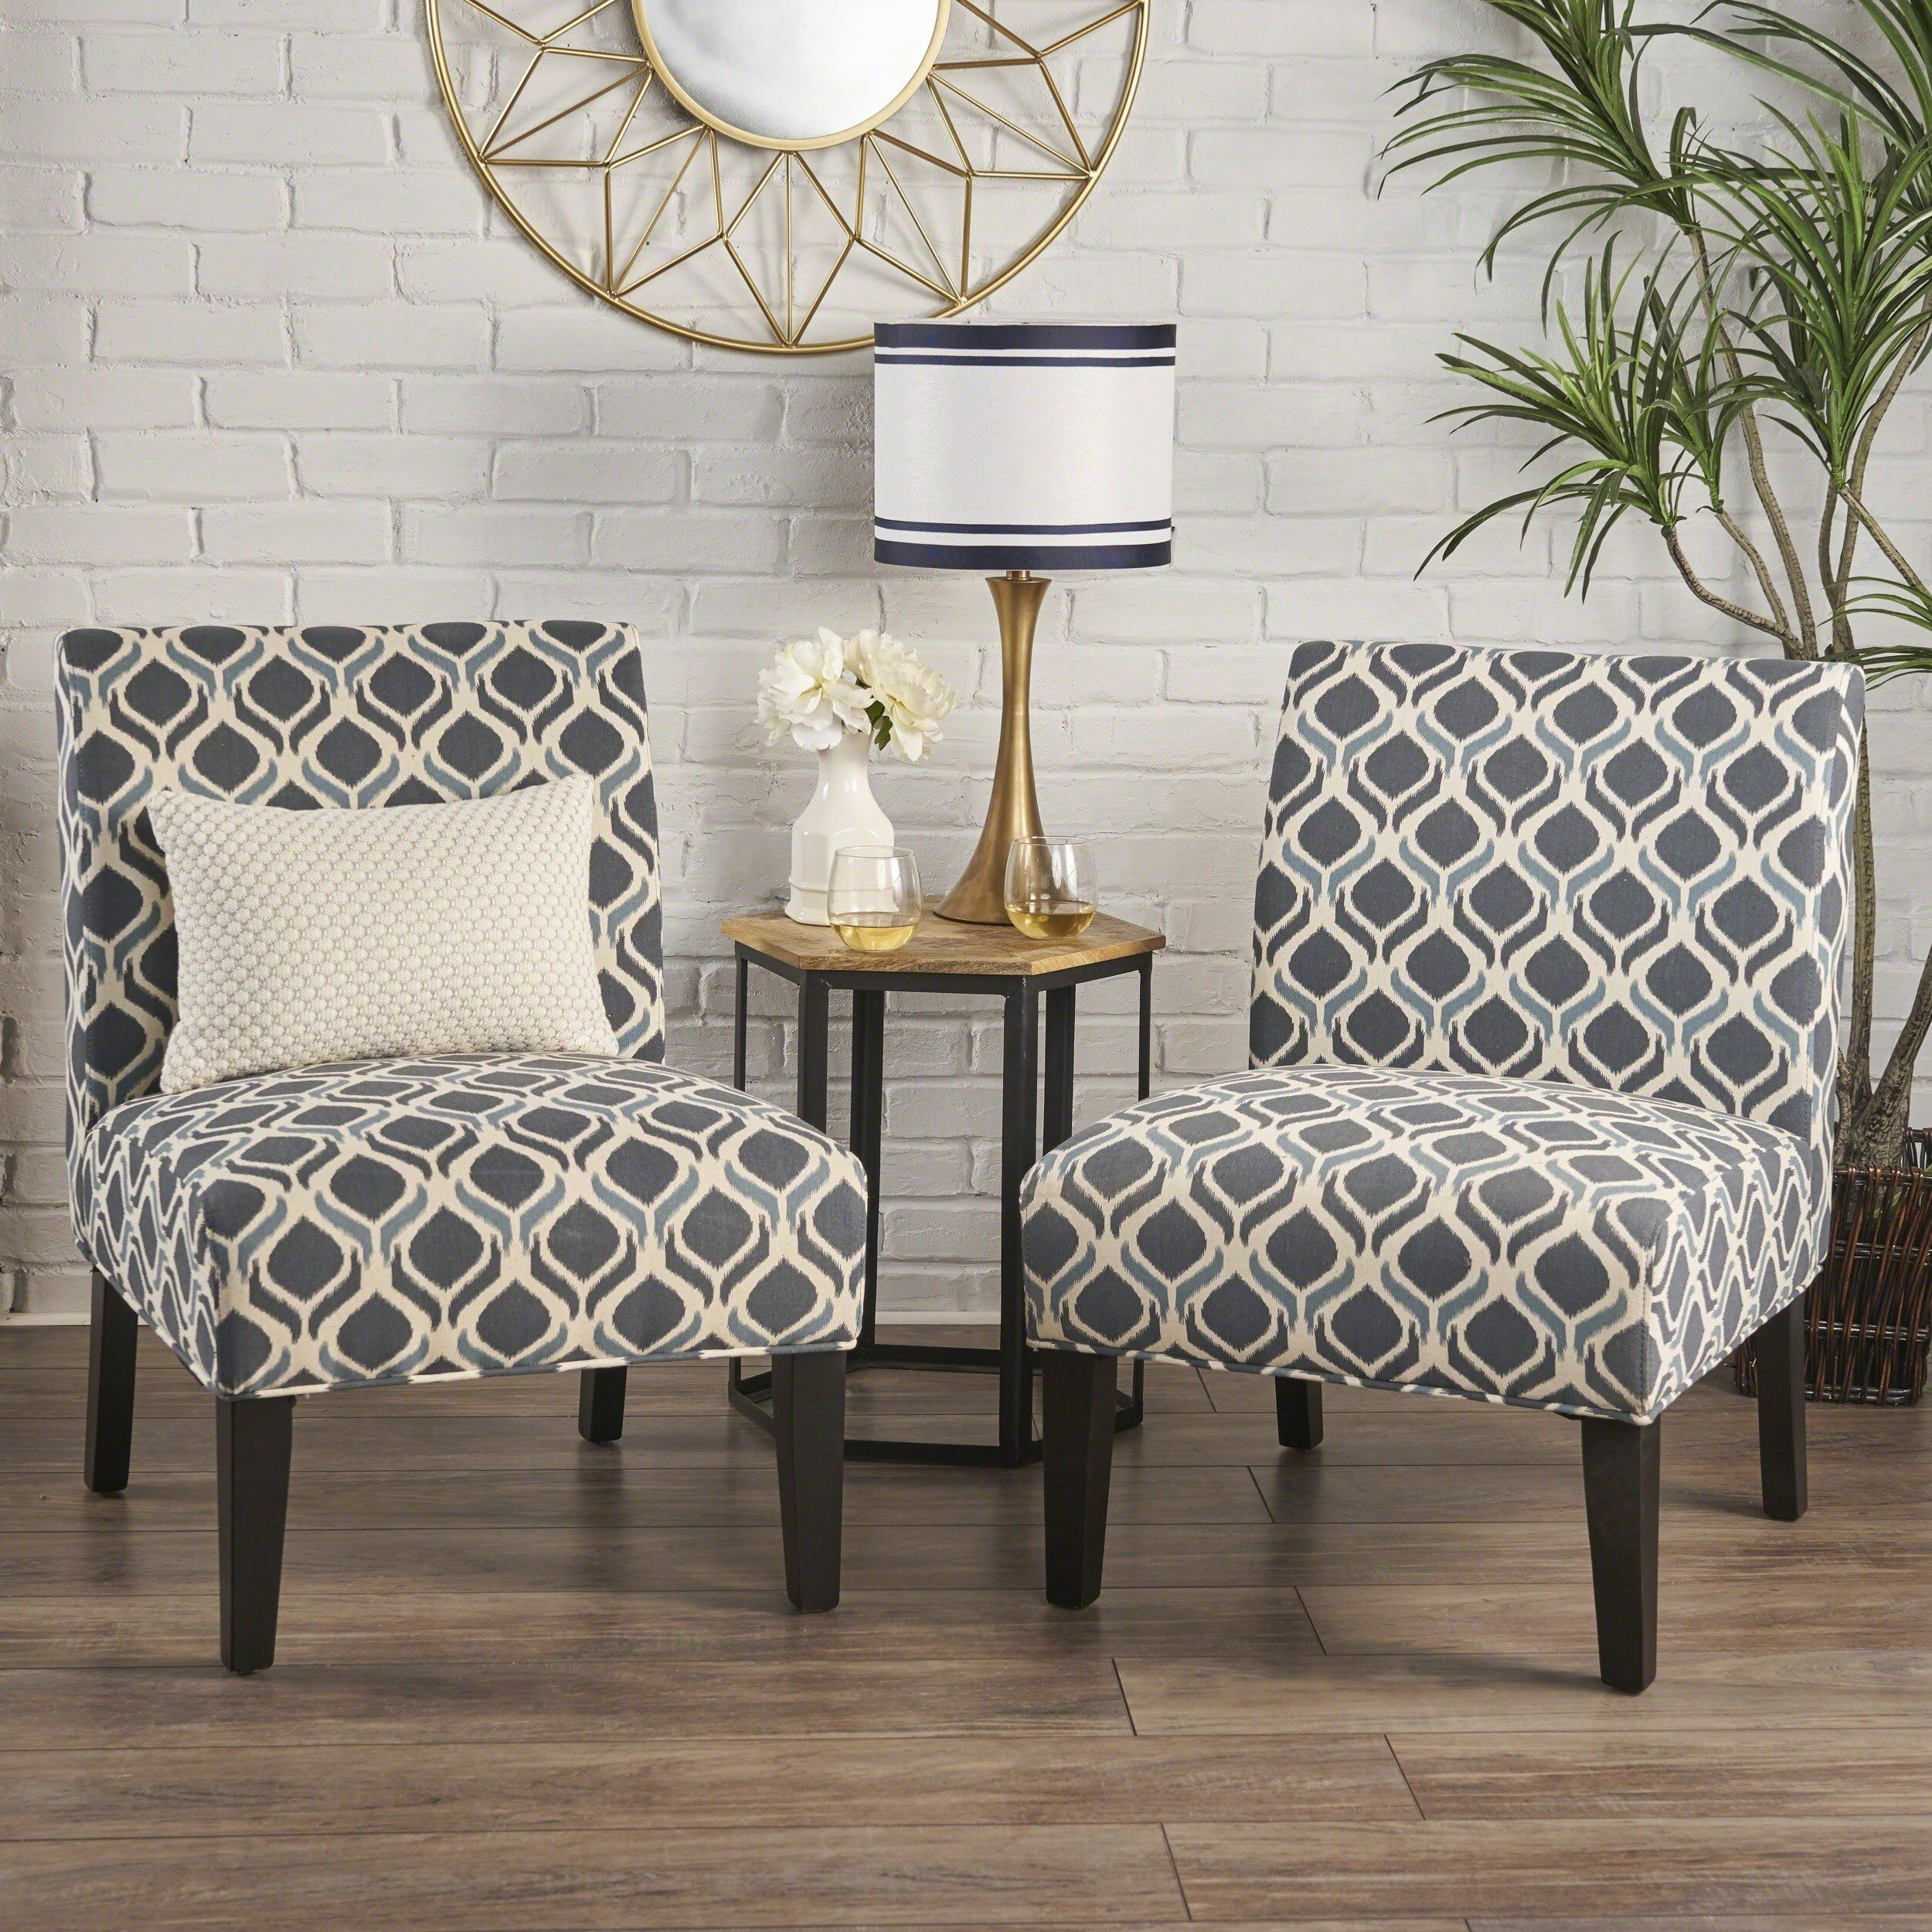 Saloon Fabric Print Accent Chair Set Of 2 By Christopher Knight Home Printed Accent Chairs Accent Chair Set Blue Accent Chairs #printed #living #room #chairs